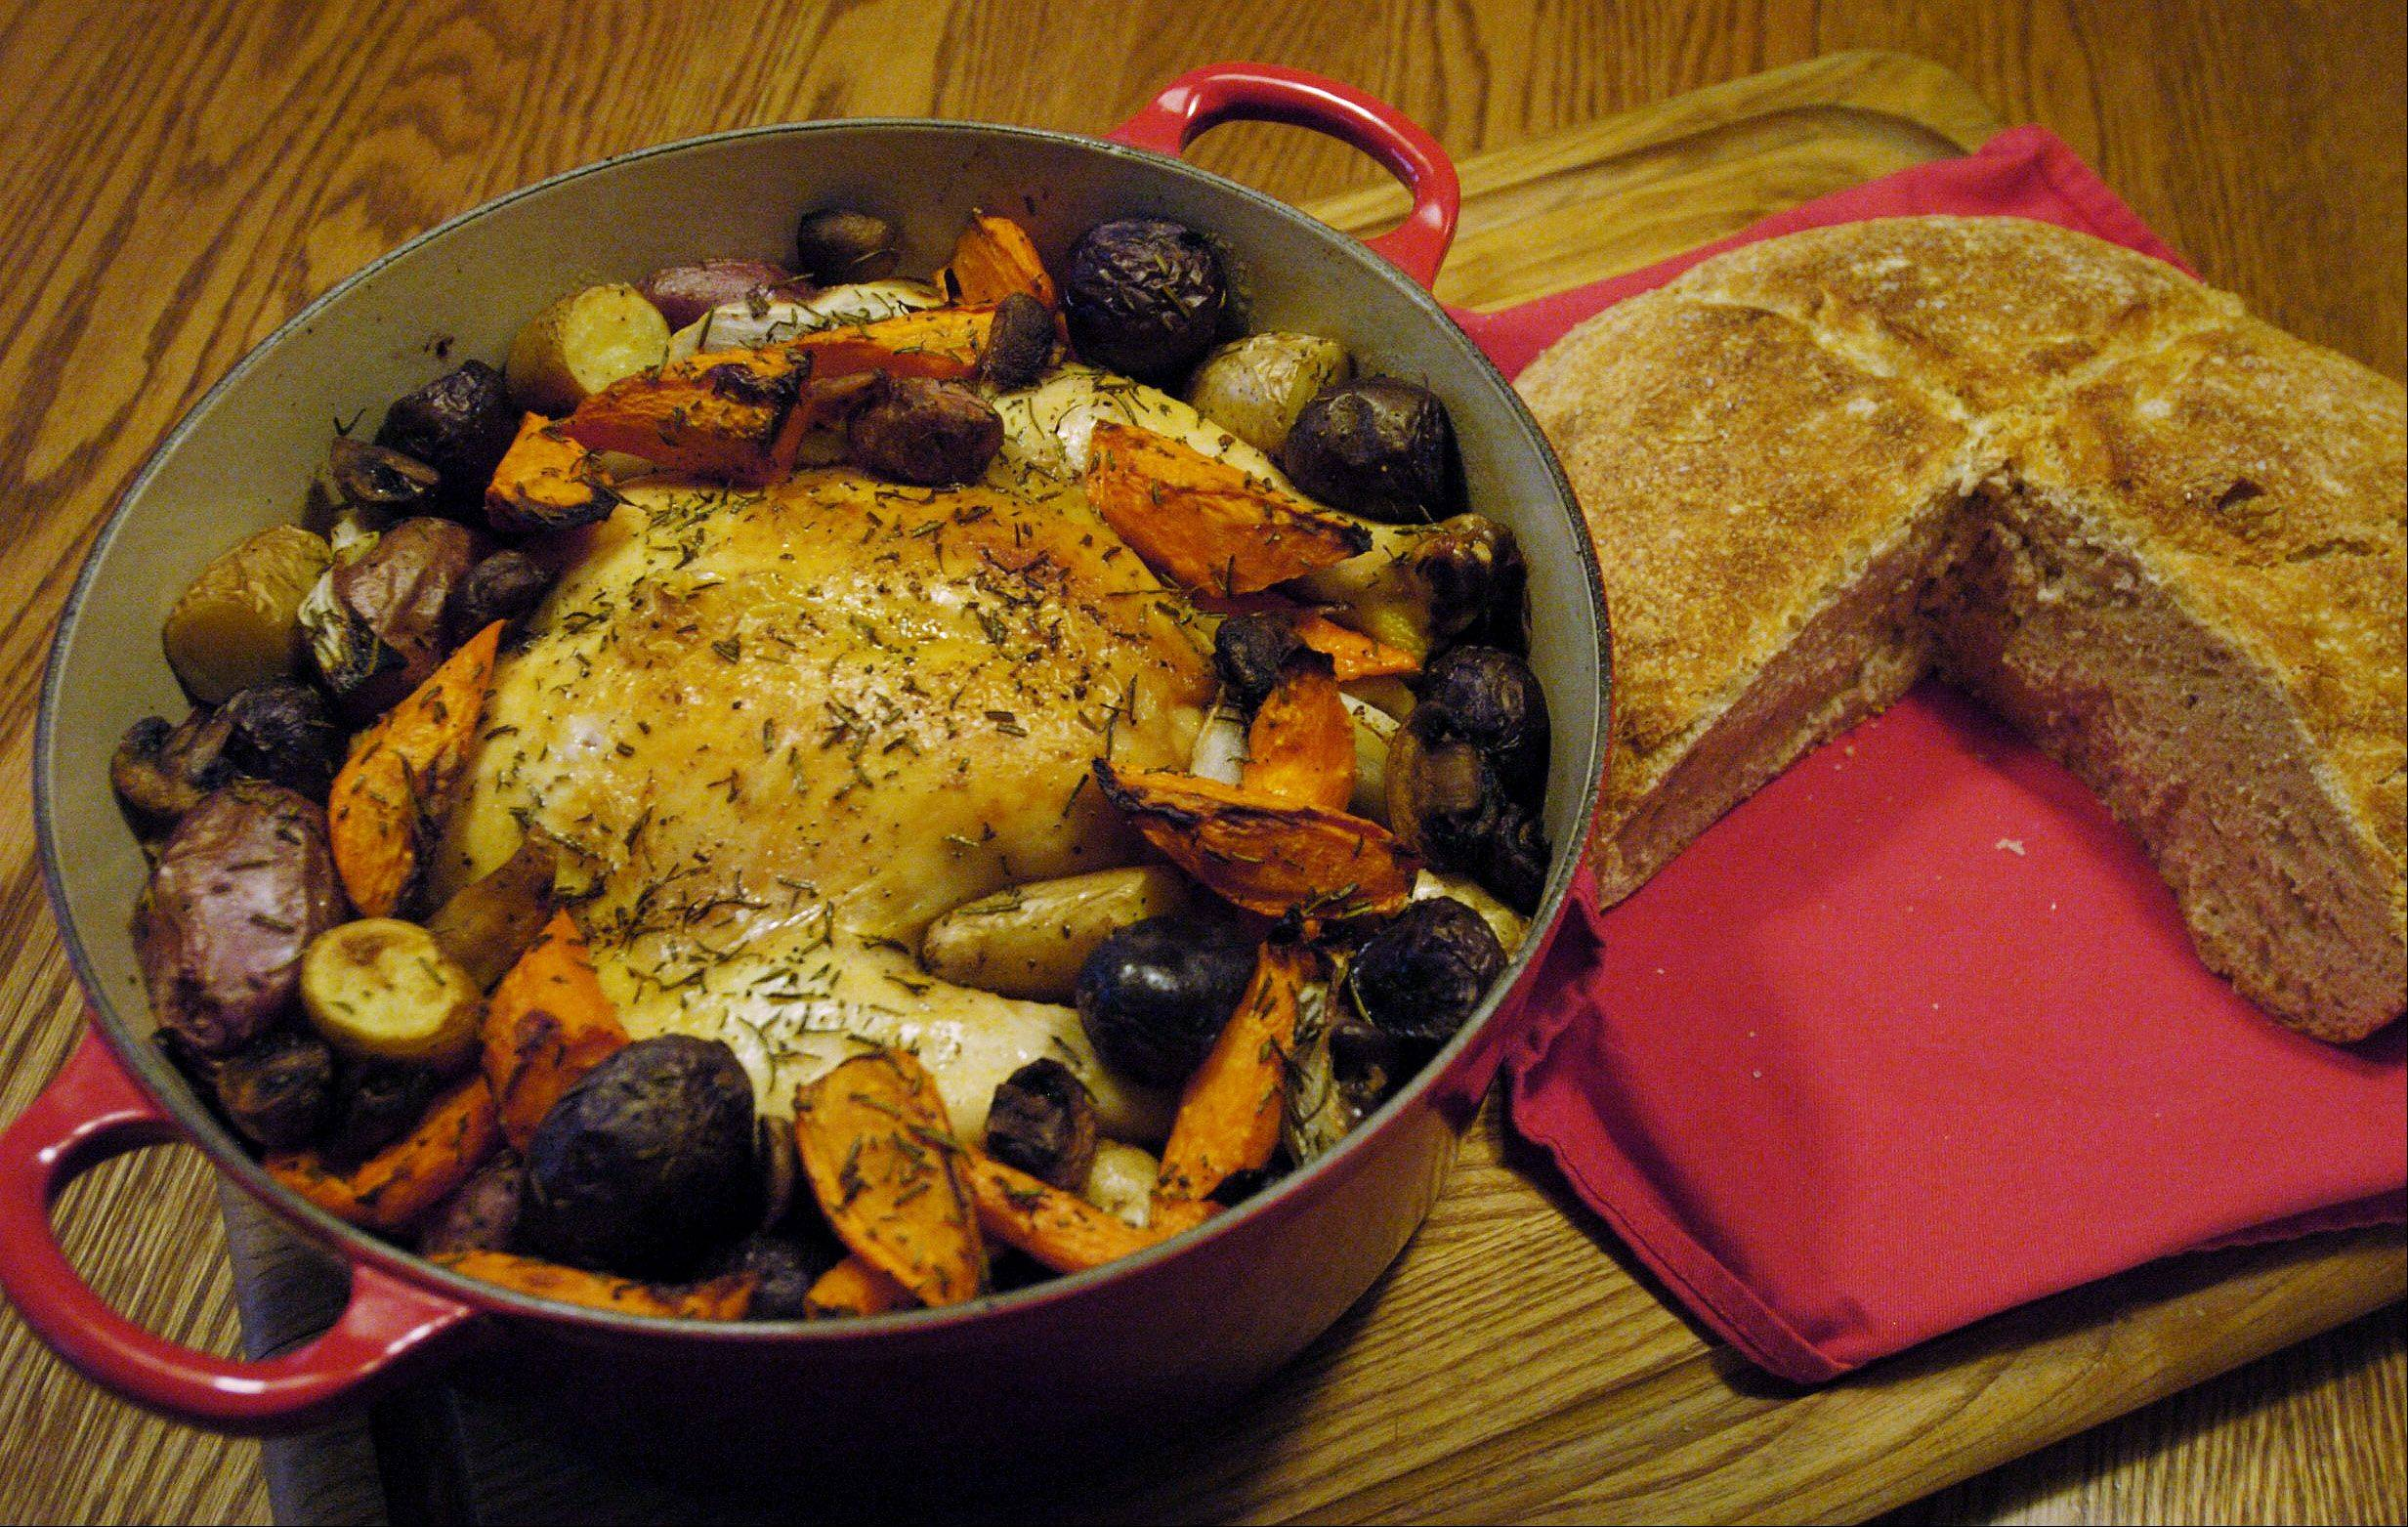 A cast-iron Dutch oven roasts chicken as evenly as it bakes bread.